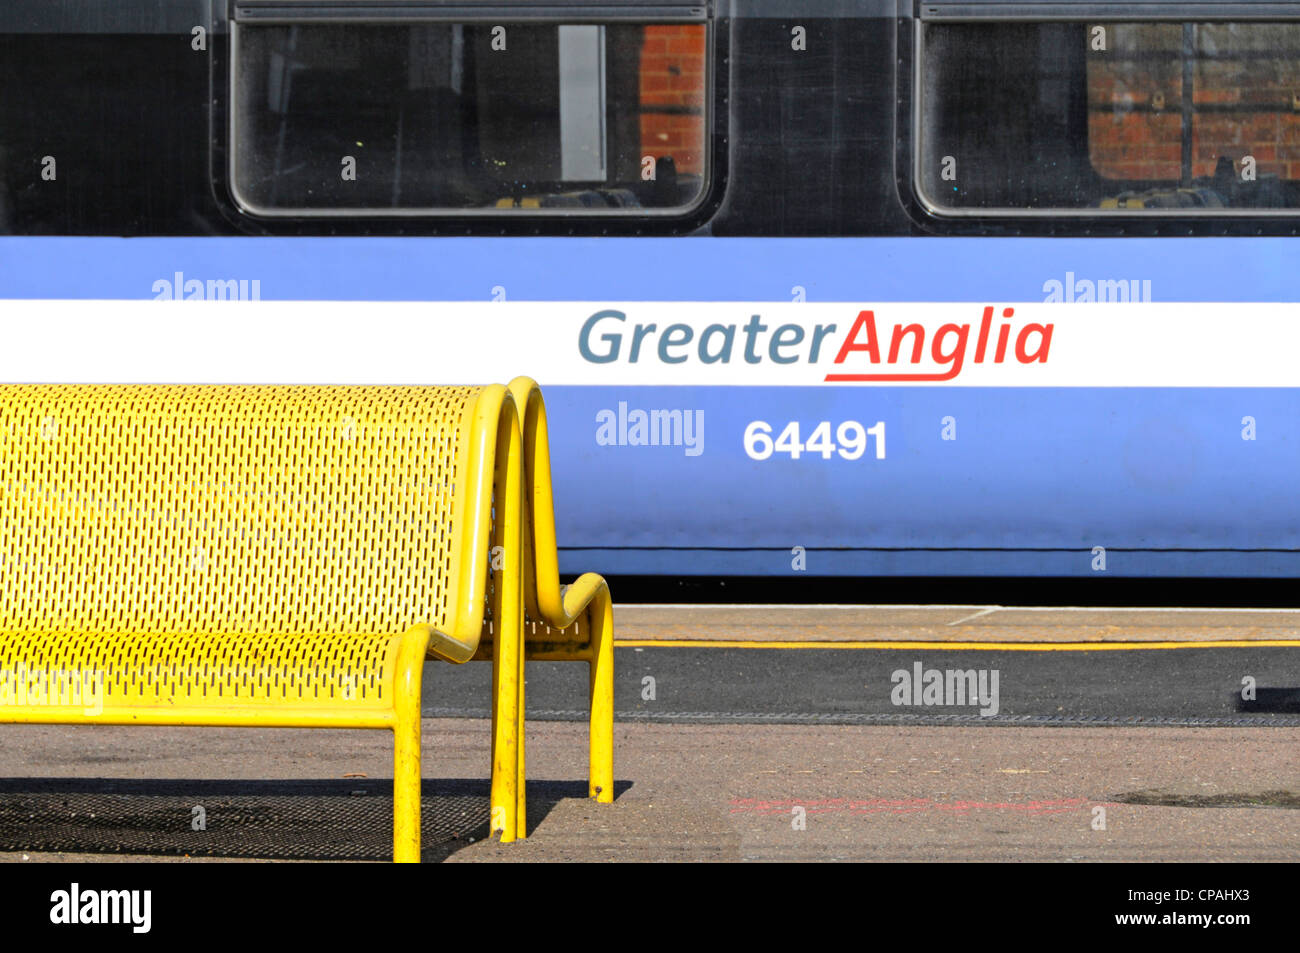 Train carriage Greater Anglia logo replacing the franchise previously operated by National Express waiting at train - Stock Image